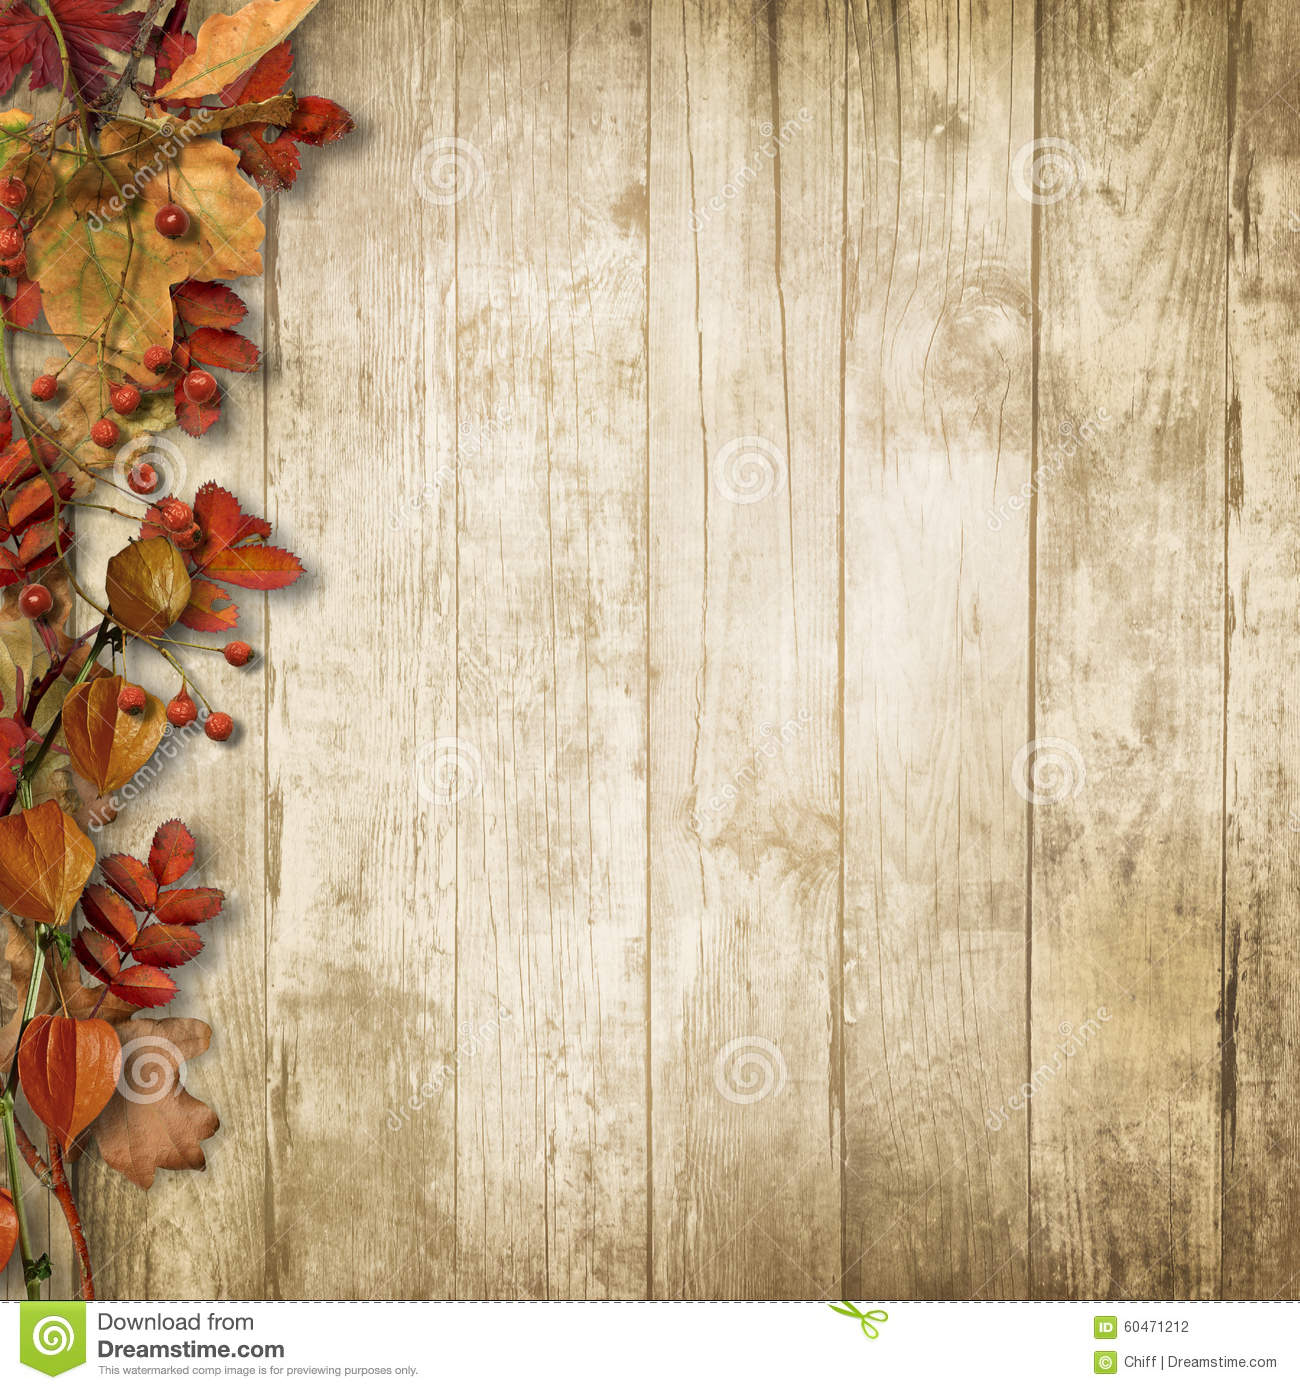 Fall Wooded Wallpaper Vintage Wooden Background With Autumn Rowan And Leaves